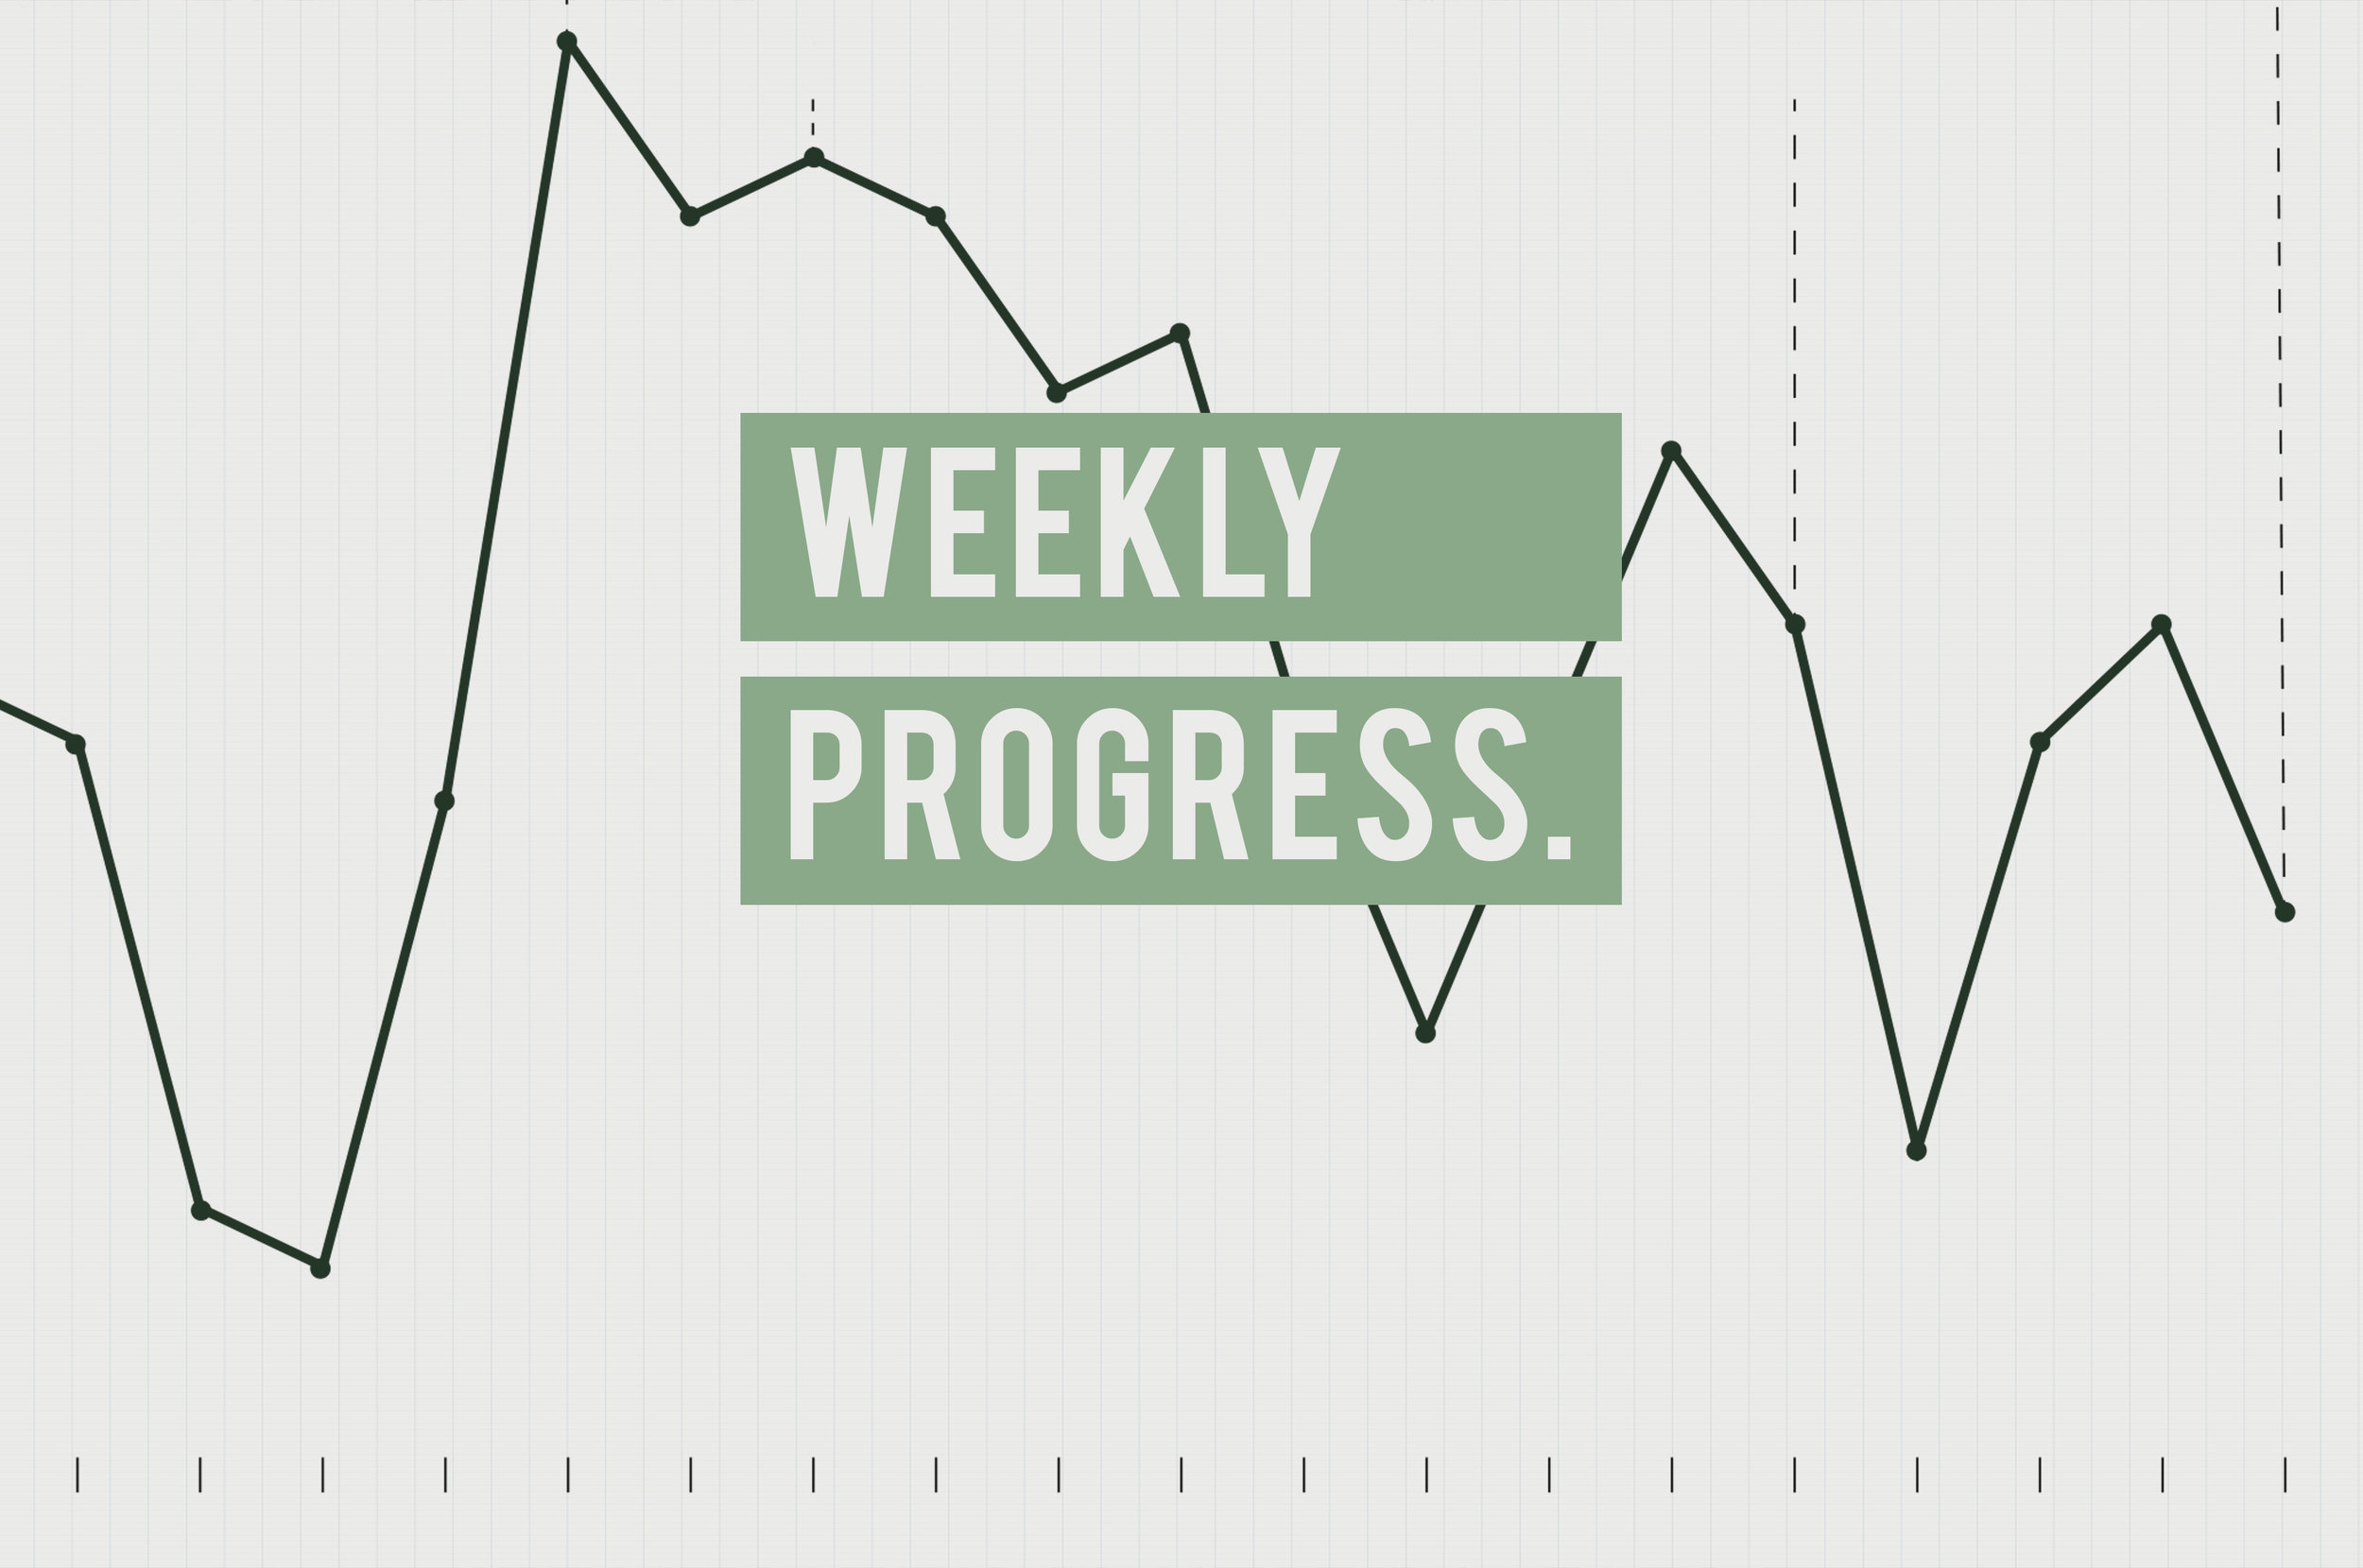 Weekly Progress.jpg